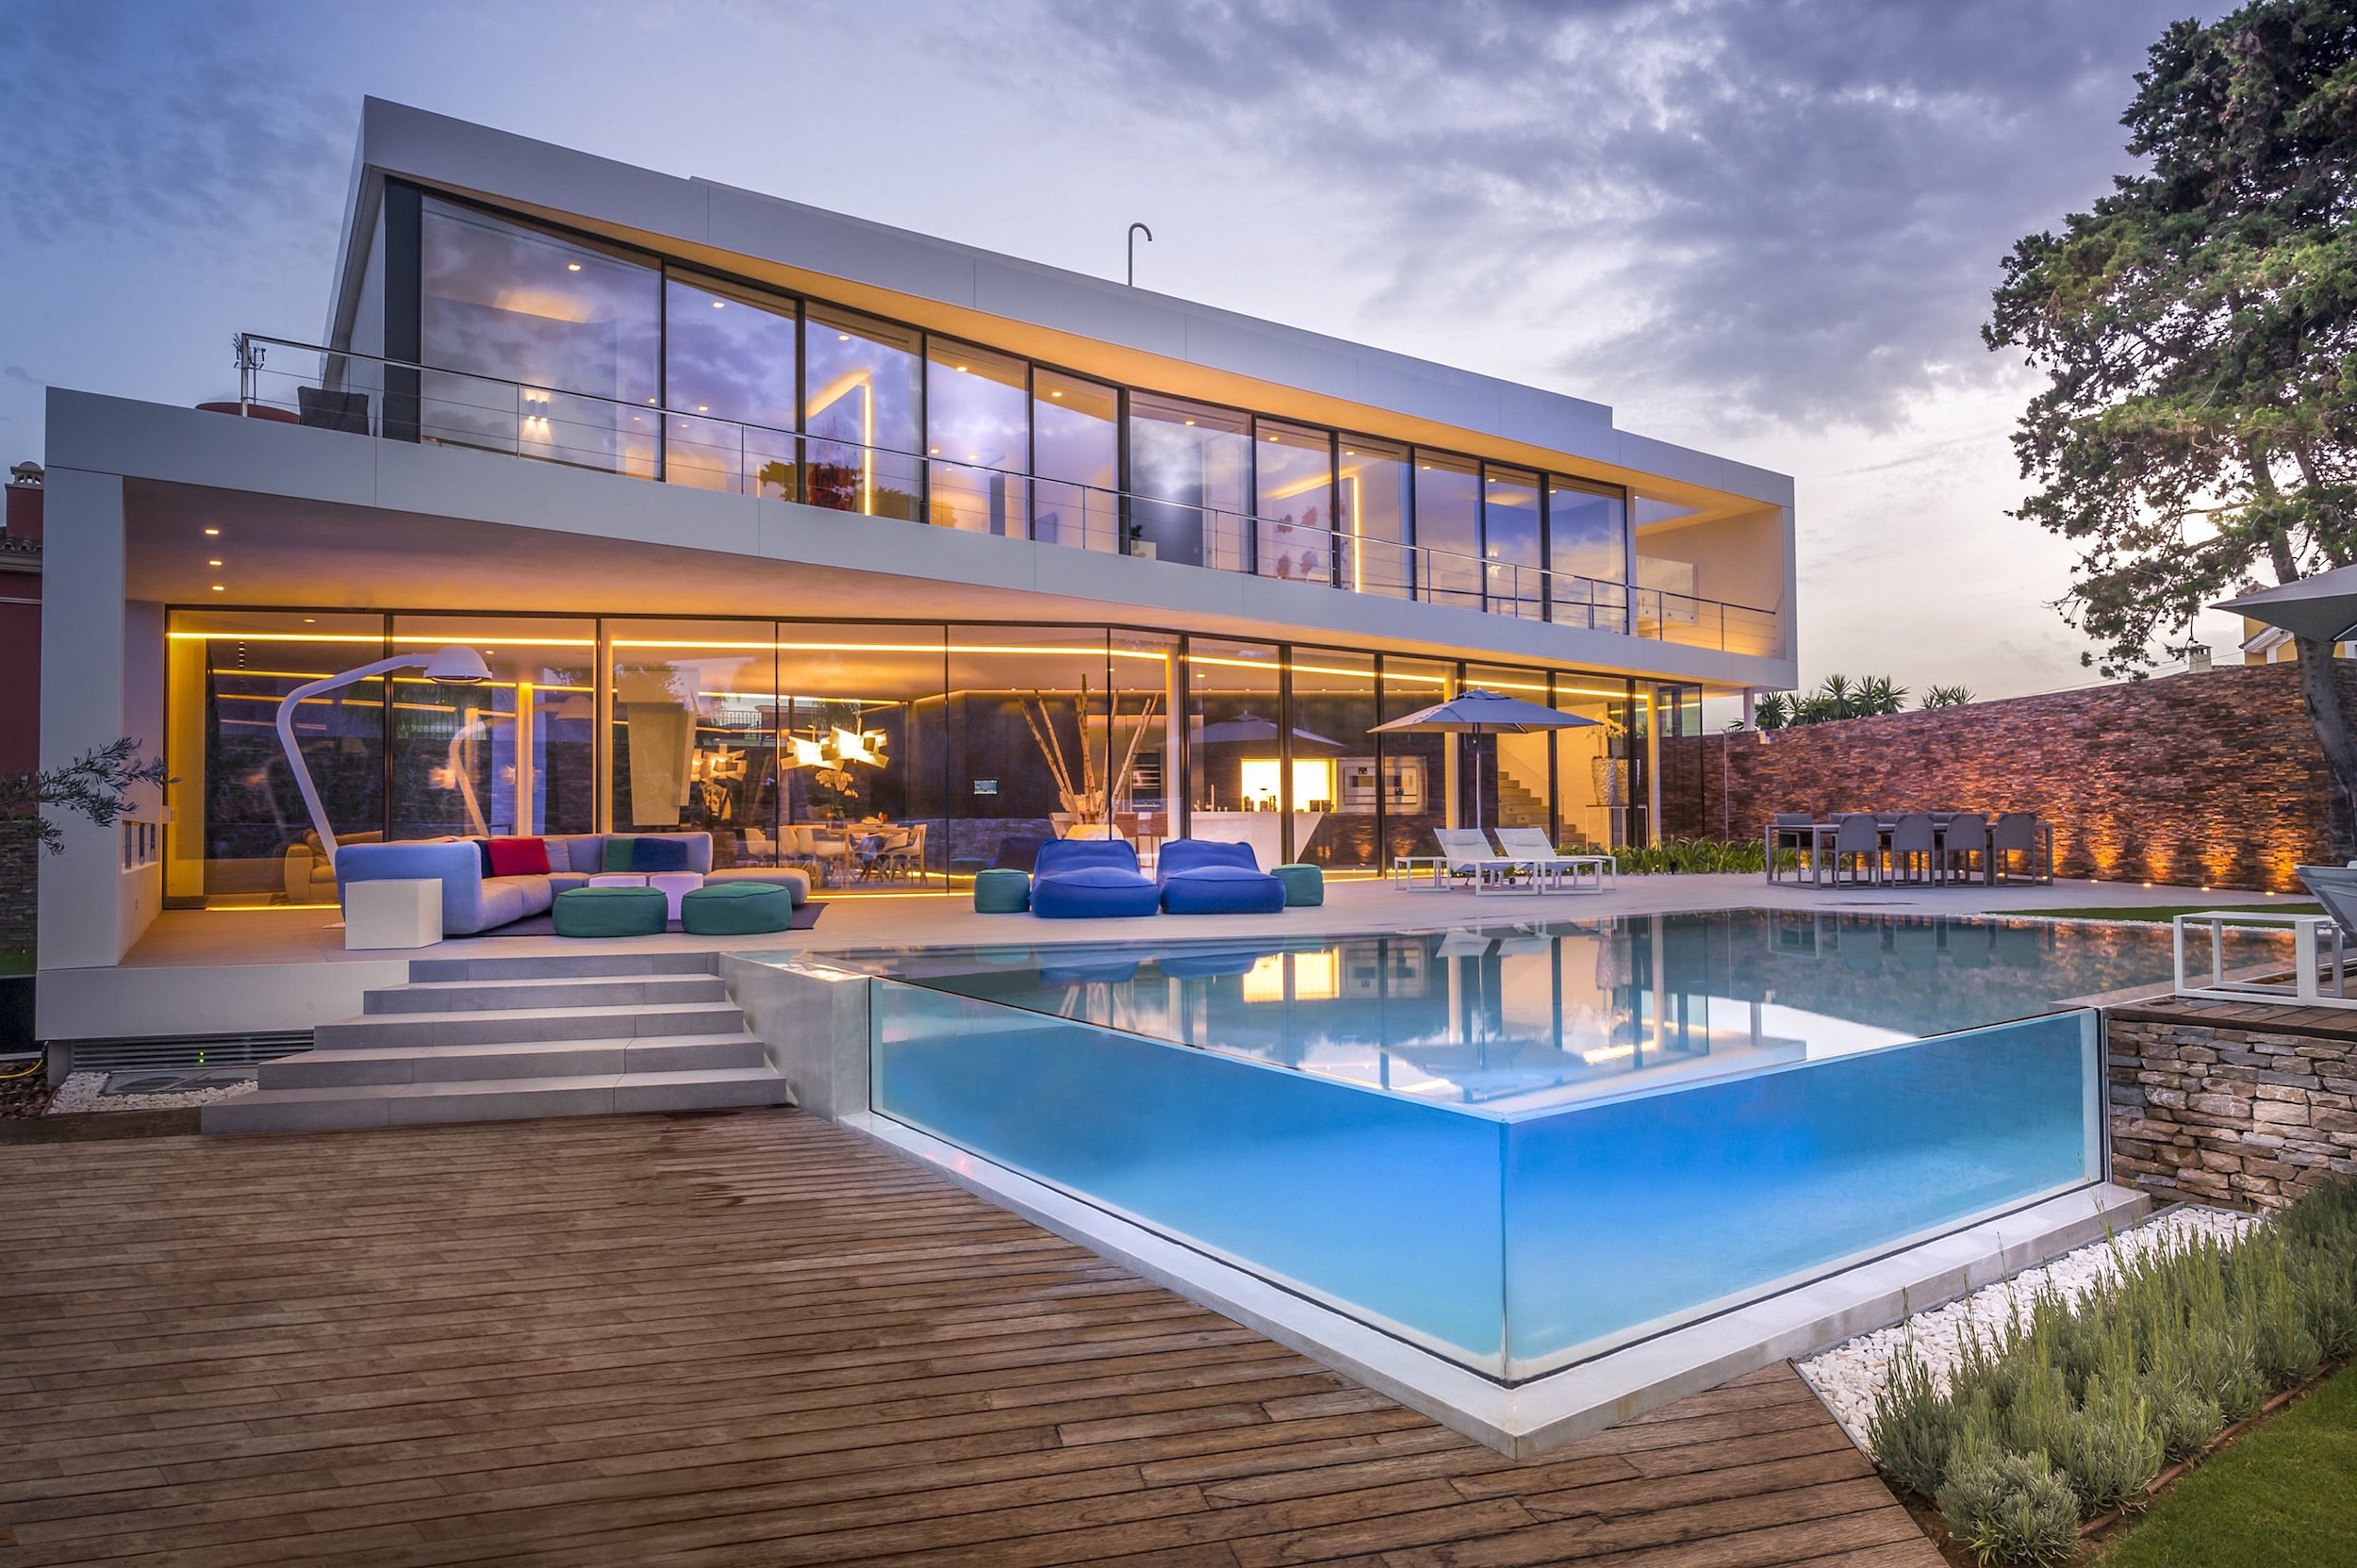 Architect Company cool blue villa in spain upon the project of 123dv architect company